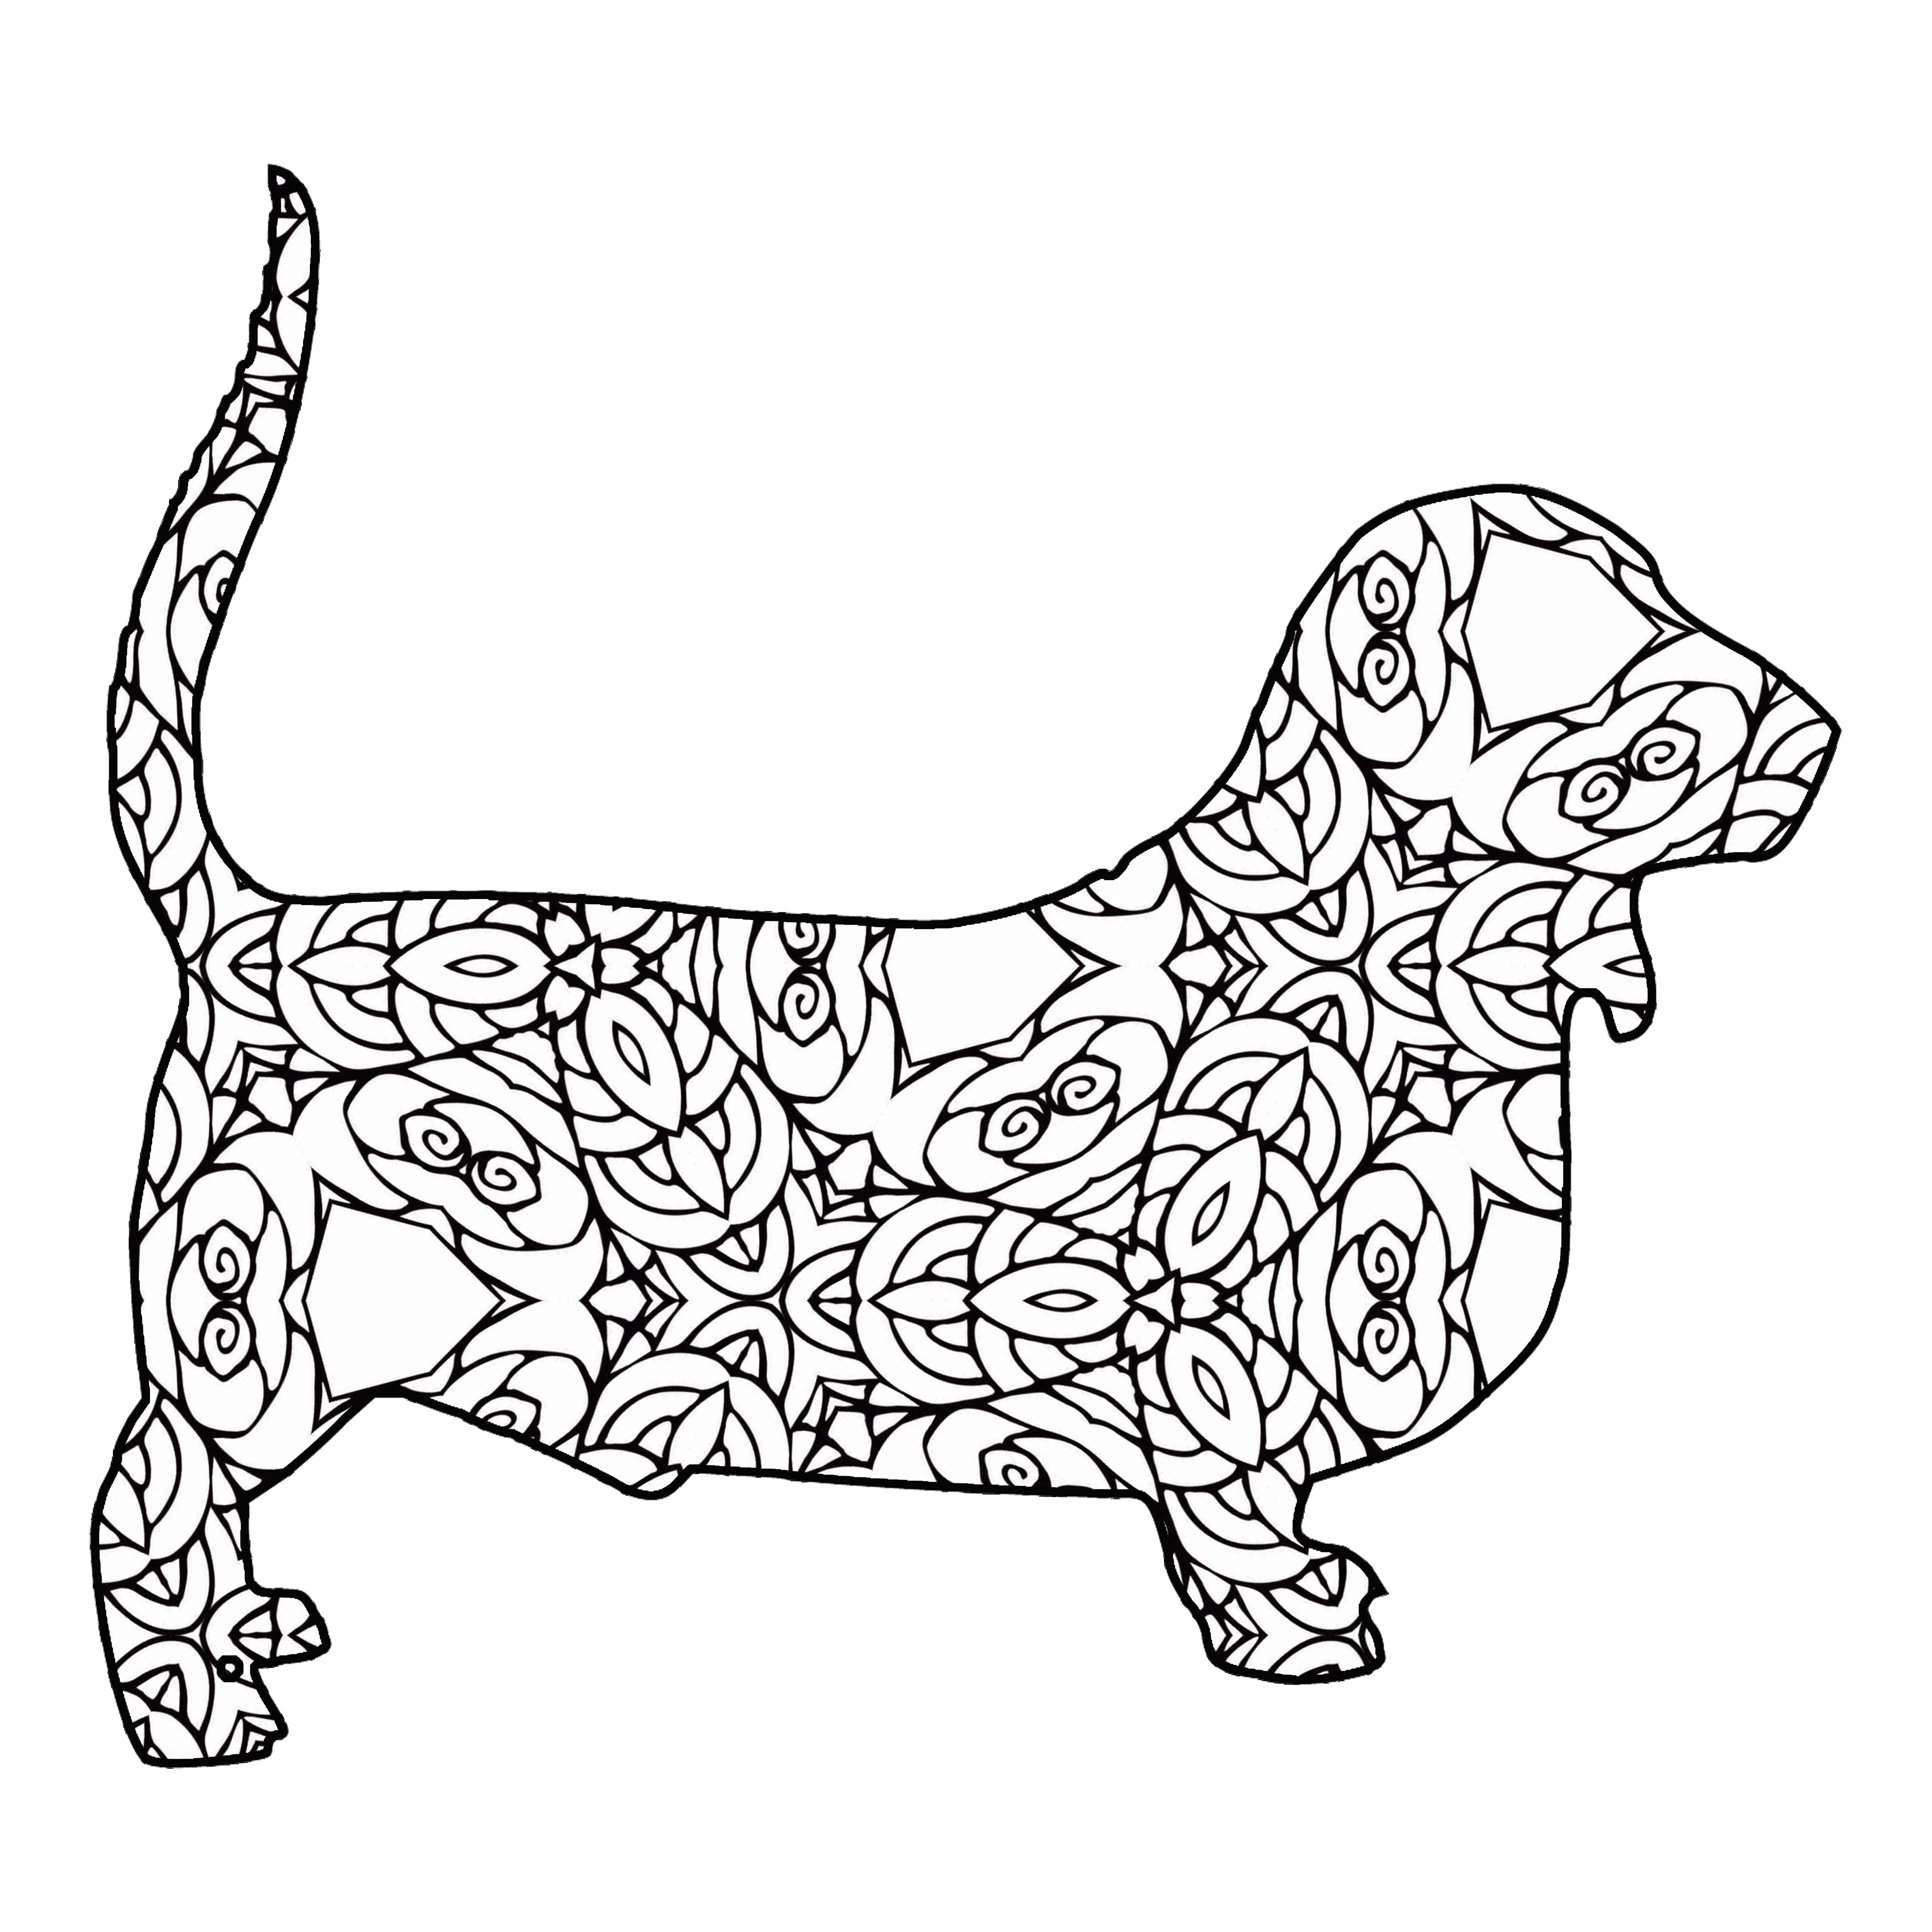 4500x4500 Coloring Pages Animal Free Draw To Color